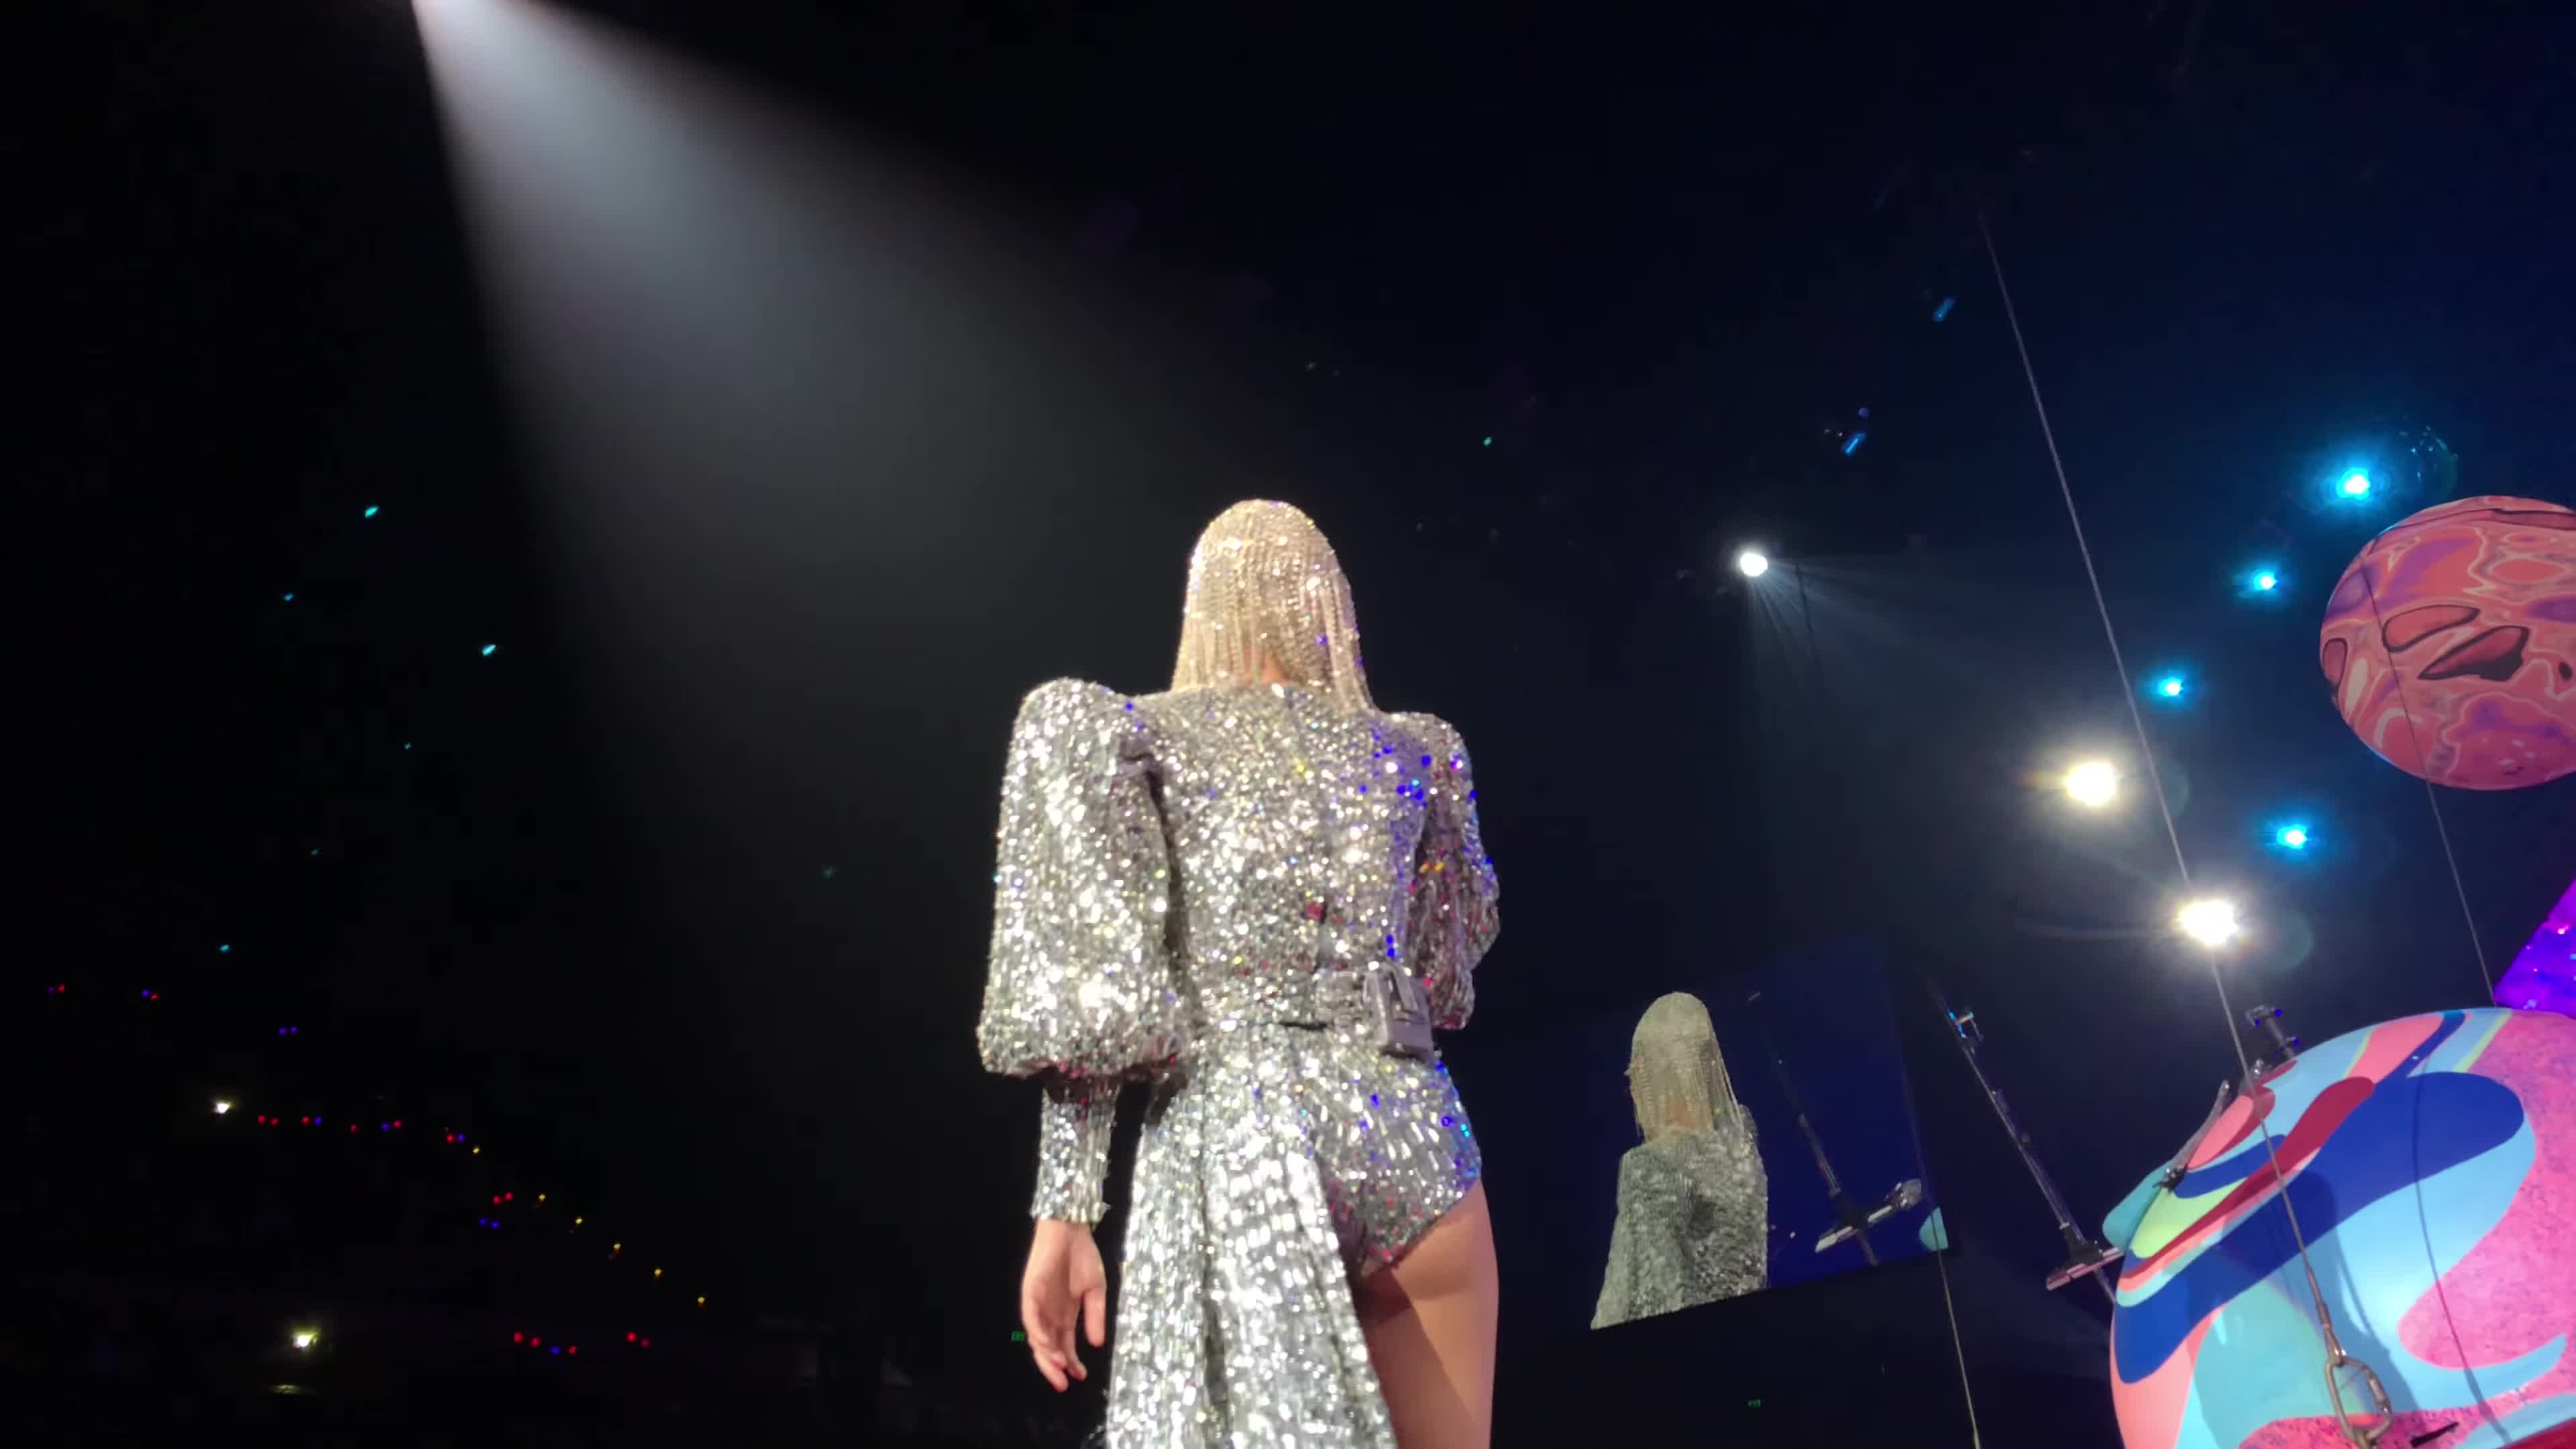 Katy Perry, Witness, Katy Perry GIFs